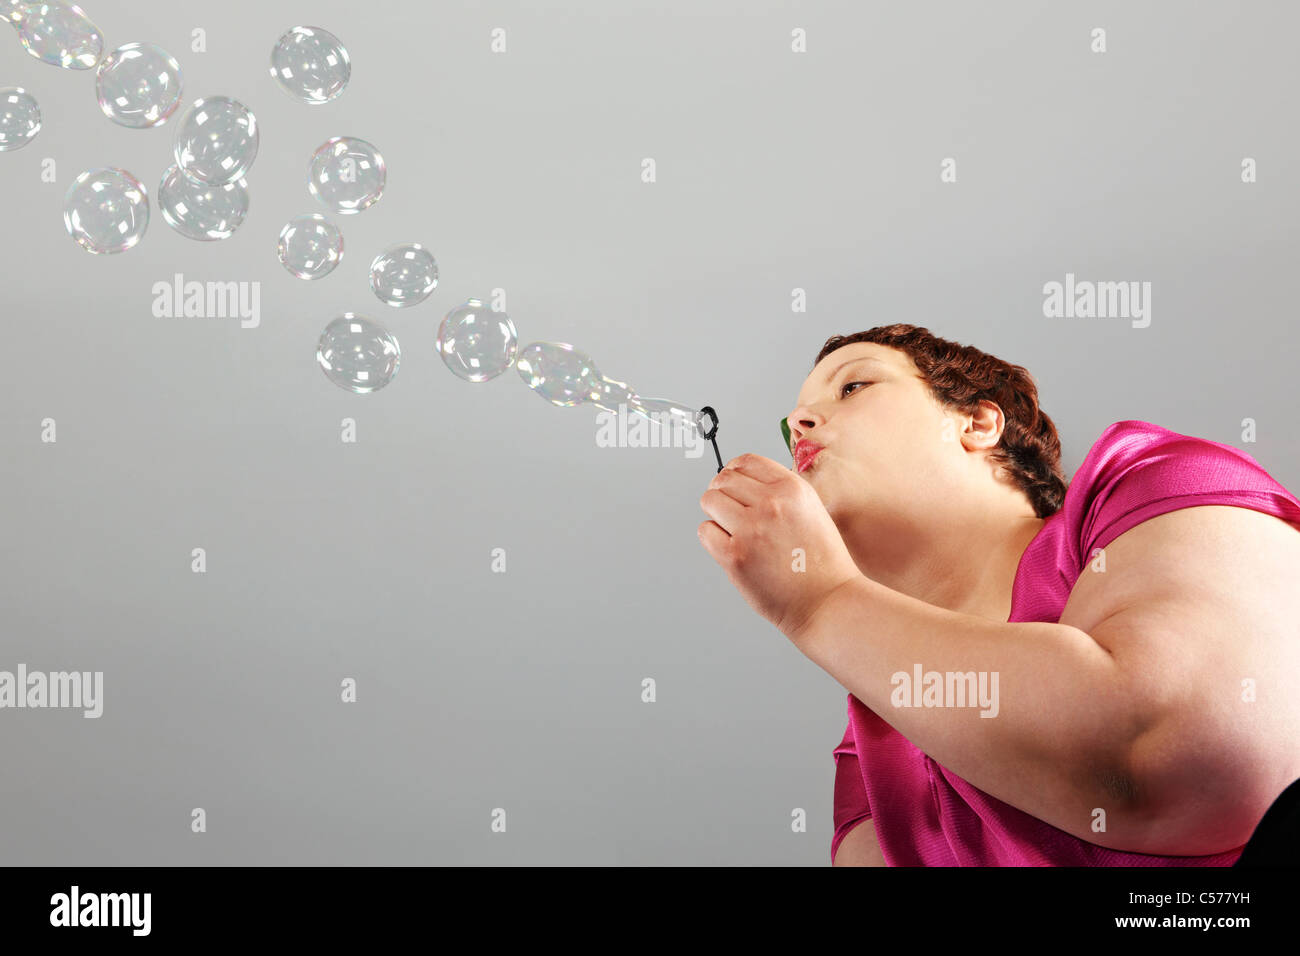 Large woman blowing bubbles Stock Photo